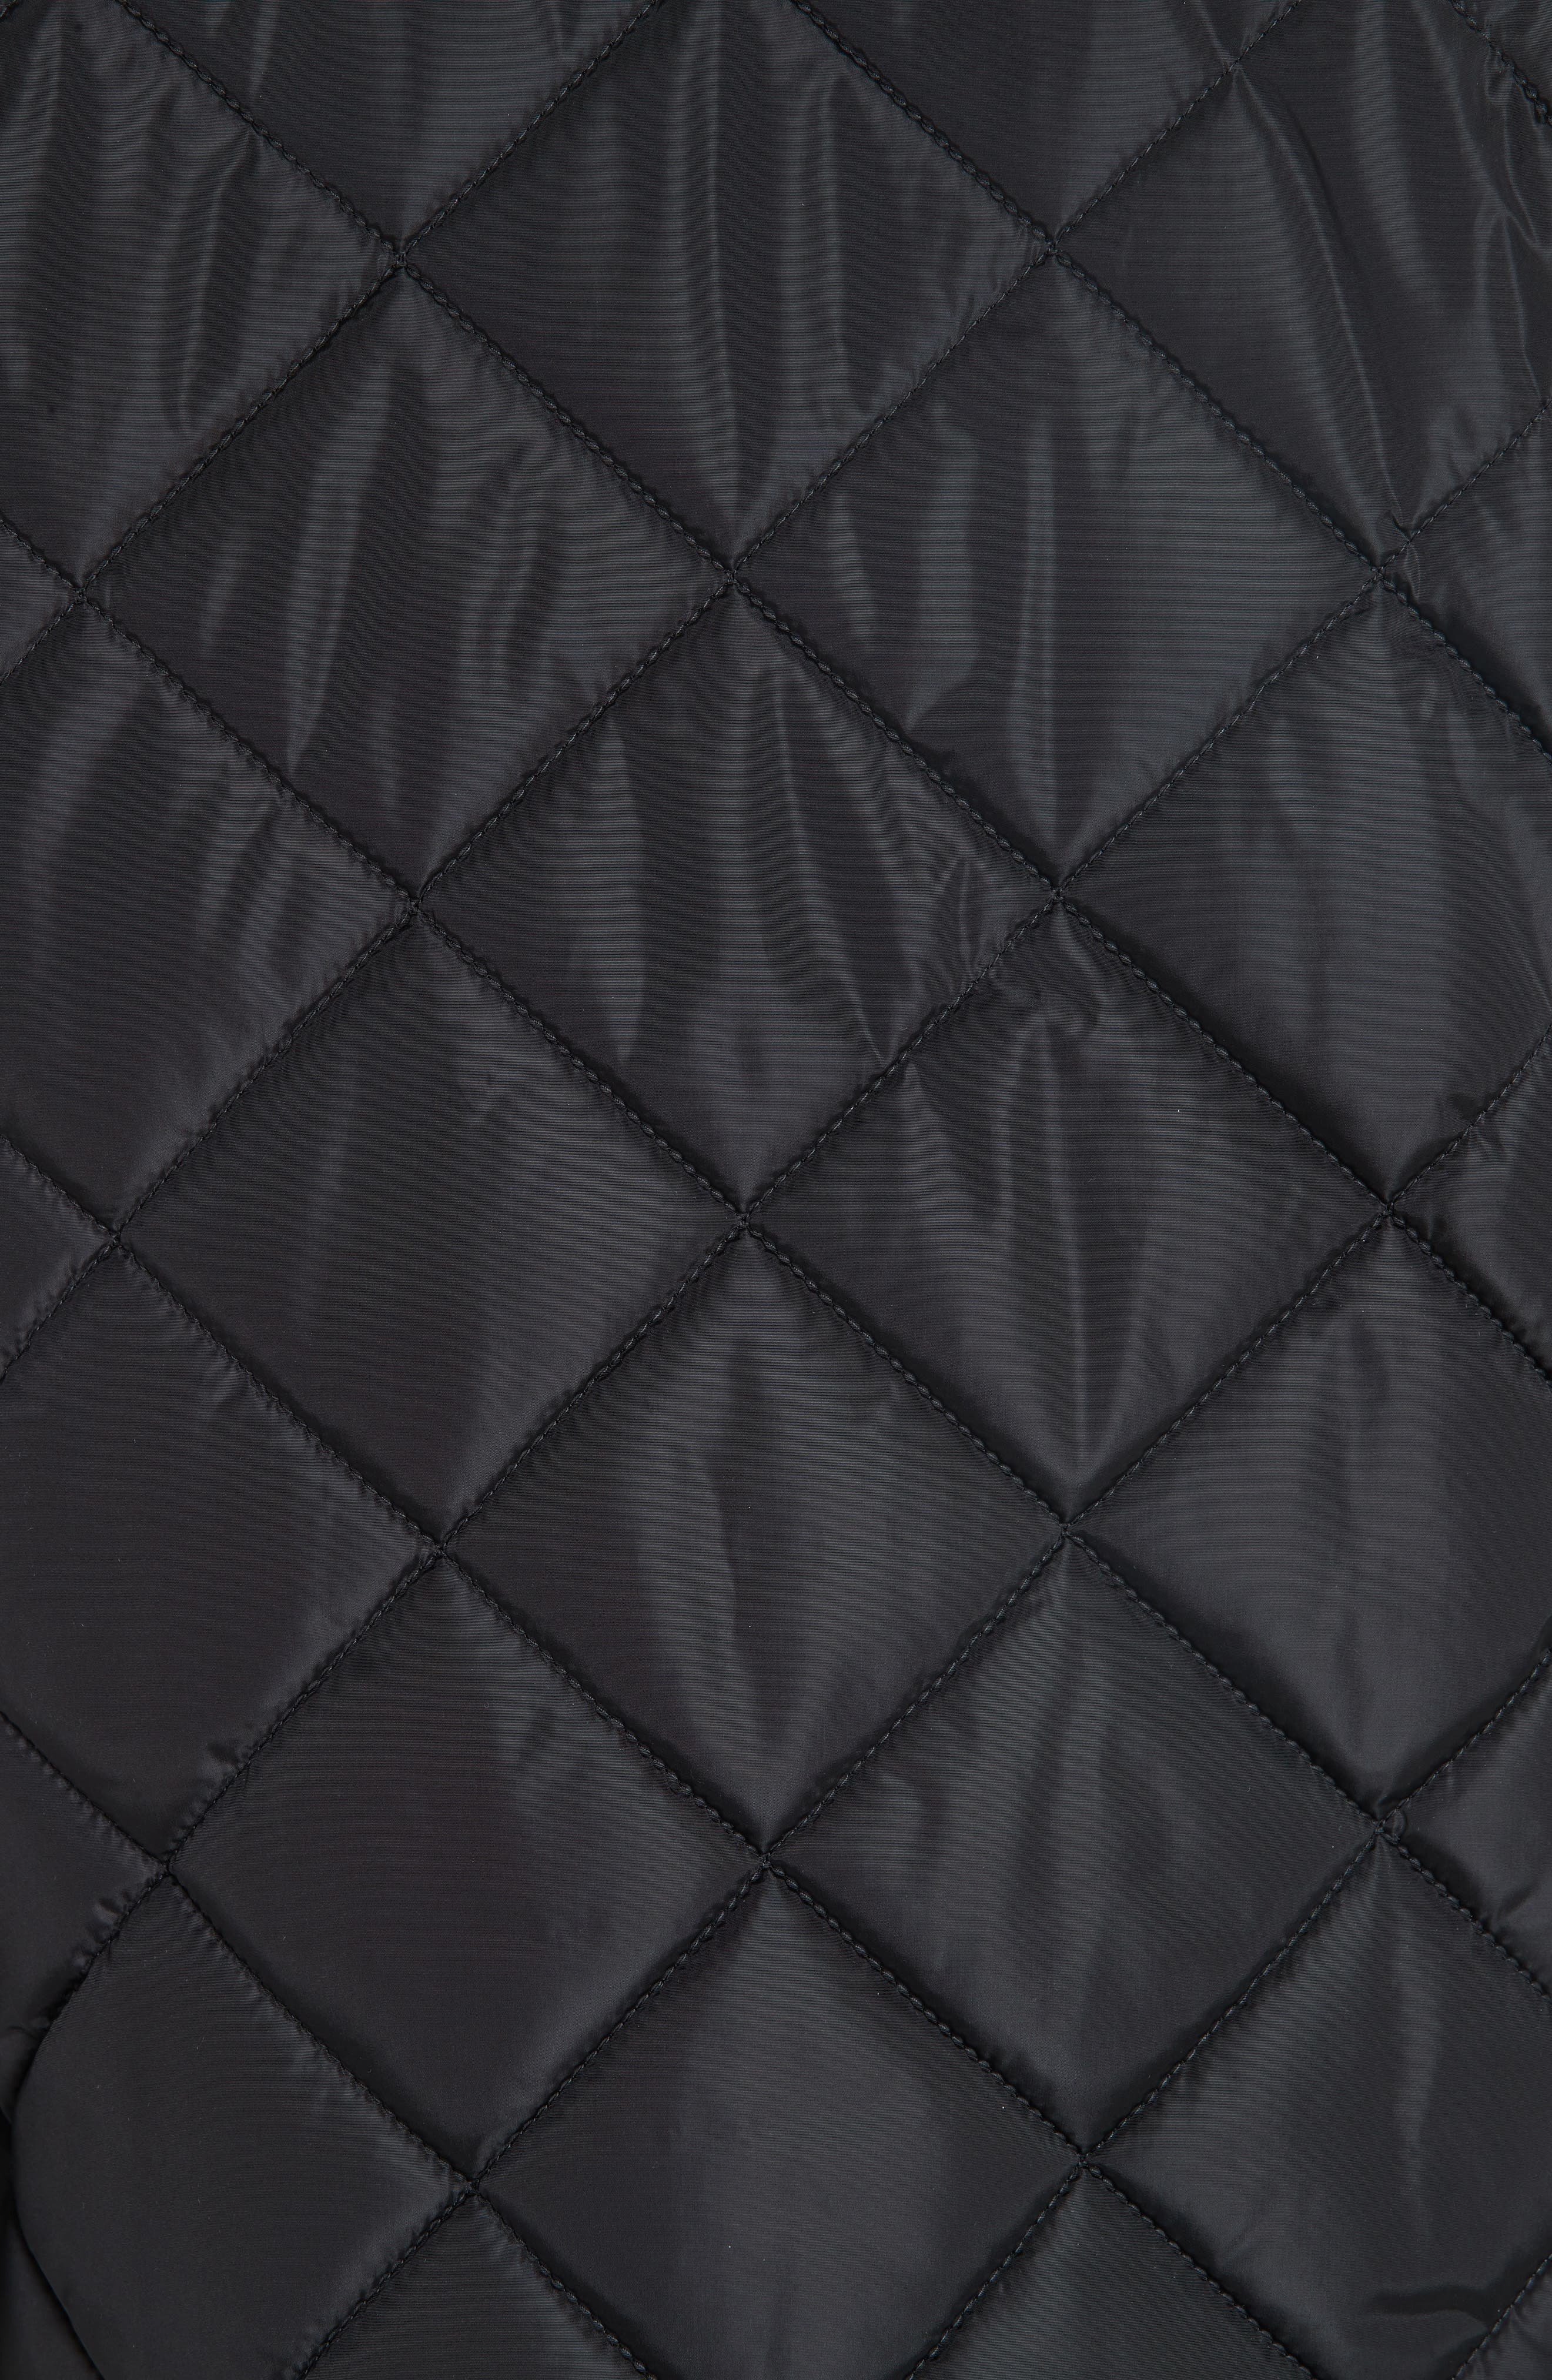 GUCCI, Ruffle Trim Quilted Caban, Alternate thumbnail 6, color, NERO